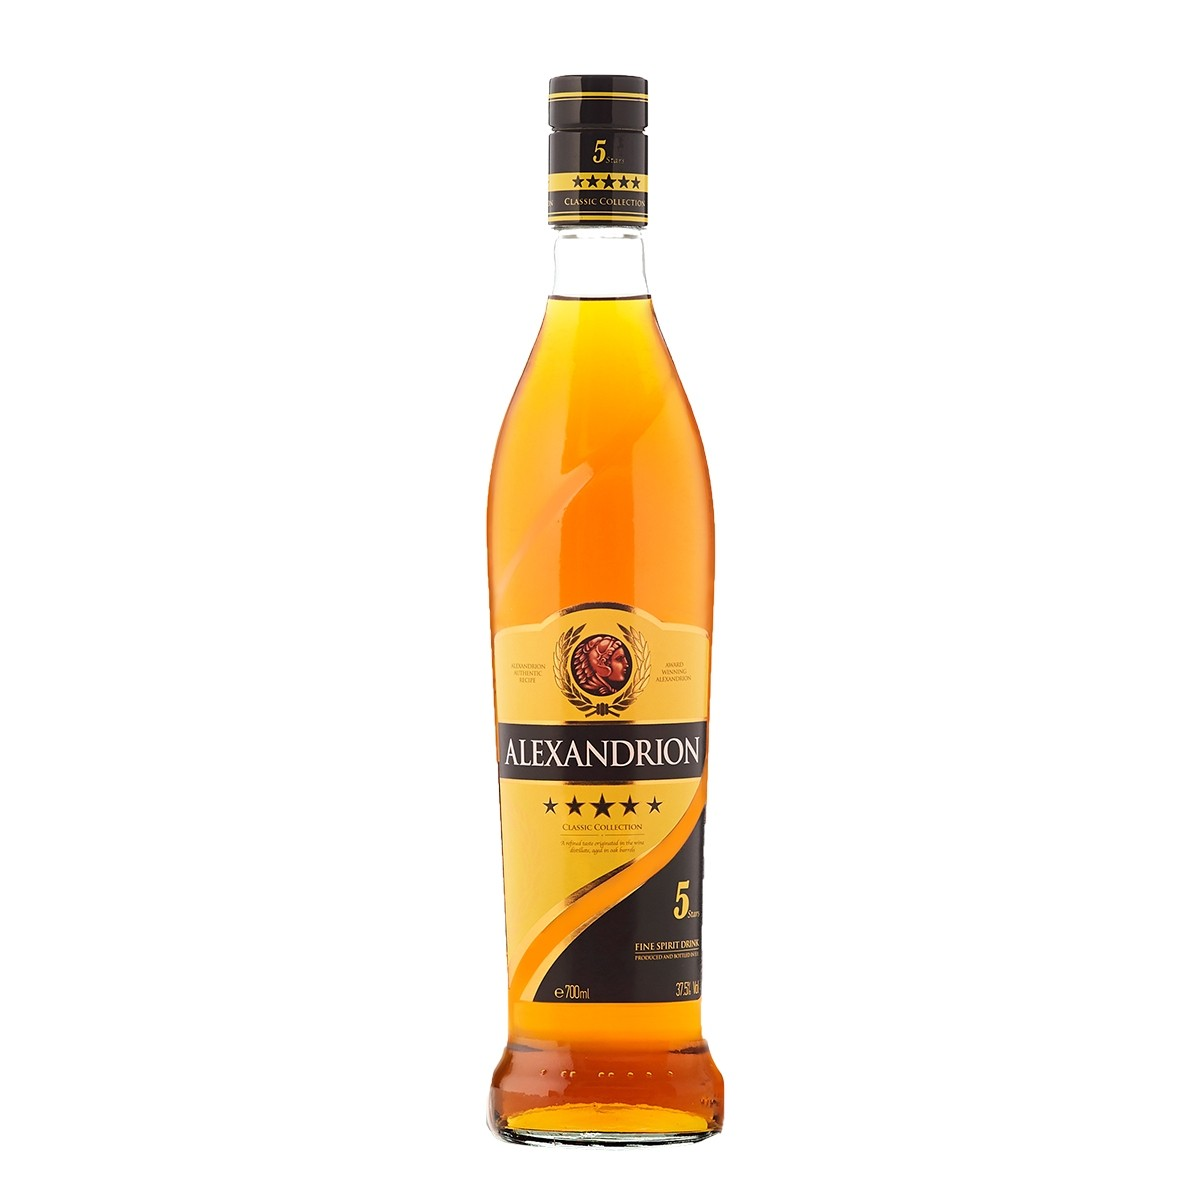 Alexandrion 5* 700 ml